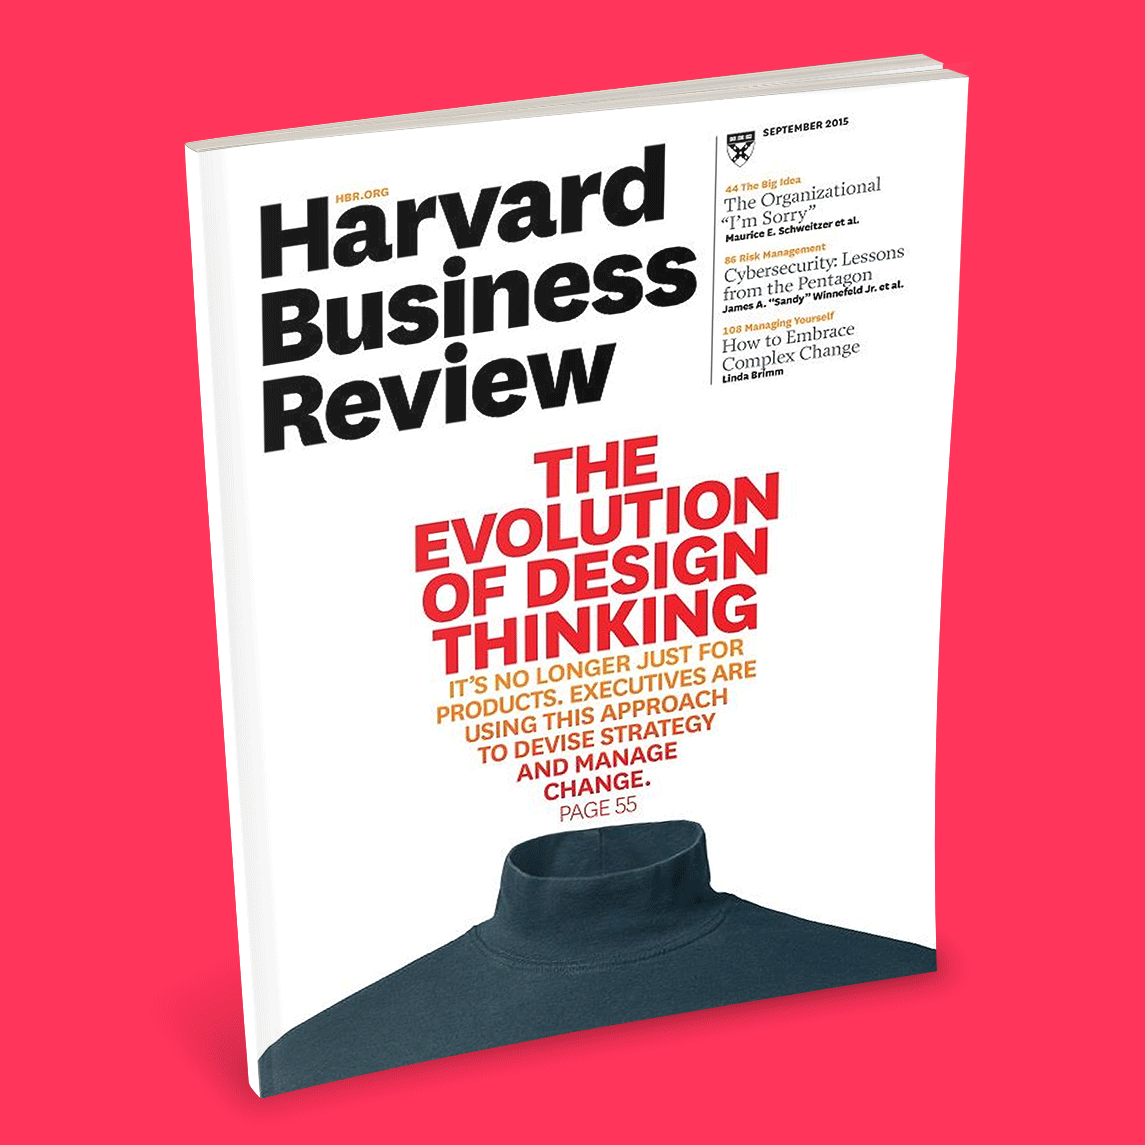 Cover of Sept. 2015 Harvard Business Review